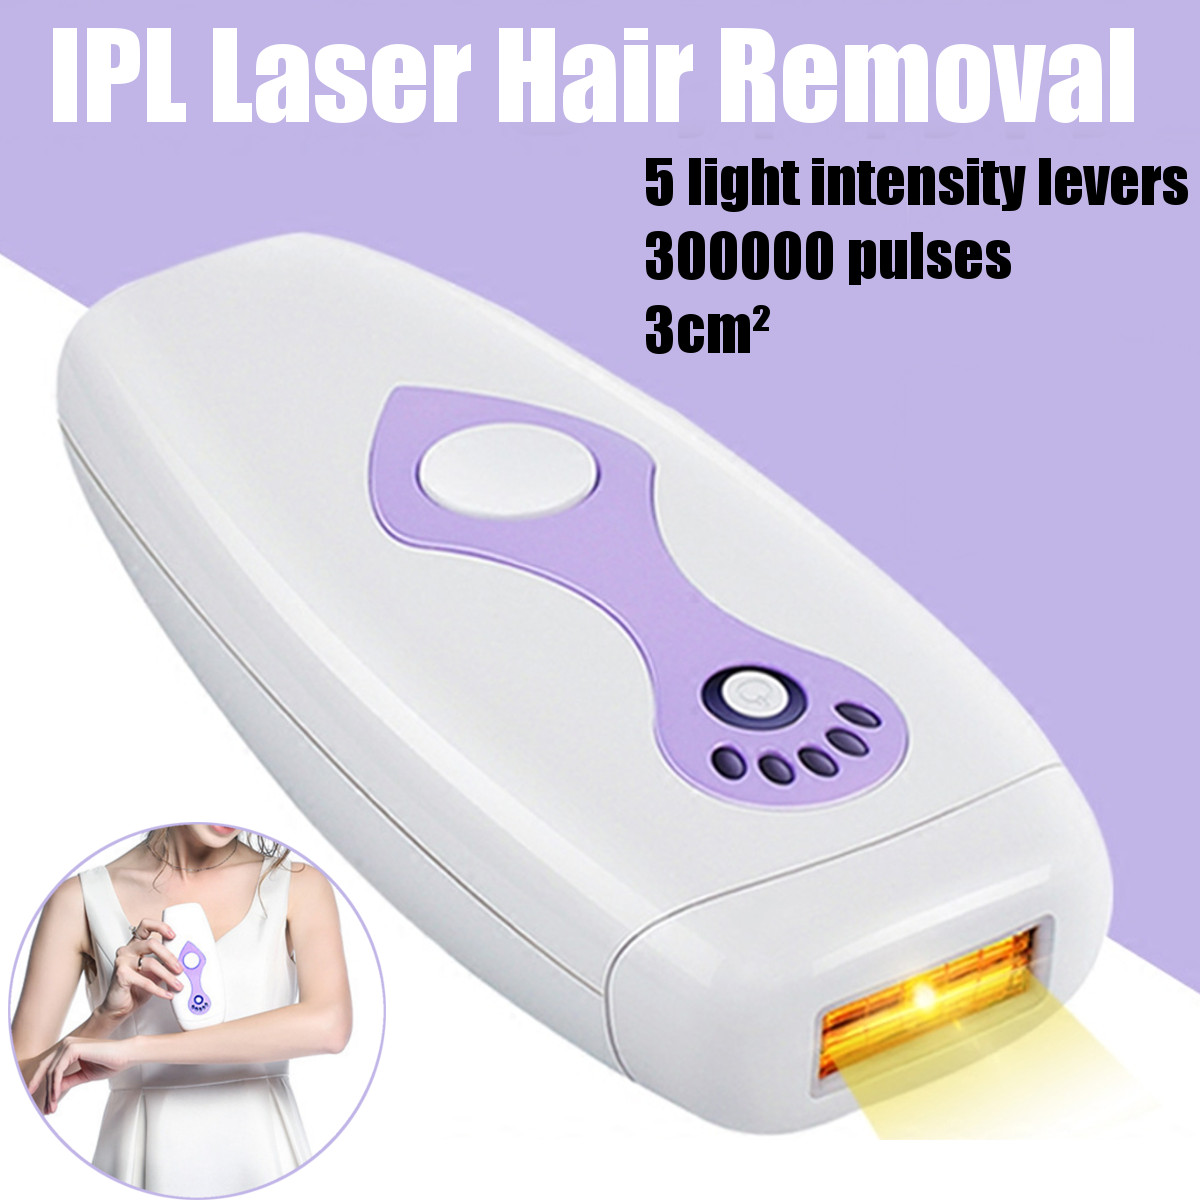 500000 Pulsed Light 5 Modes Intense IPL Electric Laser Epilator Female Body Hair Removal Photo Women Painless Threading Machine500000 Pulsed Light 5 Modes Intense IPL Electric Laser Epilator Female Body Hair Removal Photo Women Painless Threading Machine